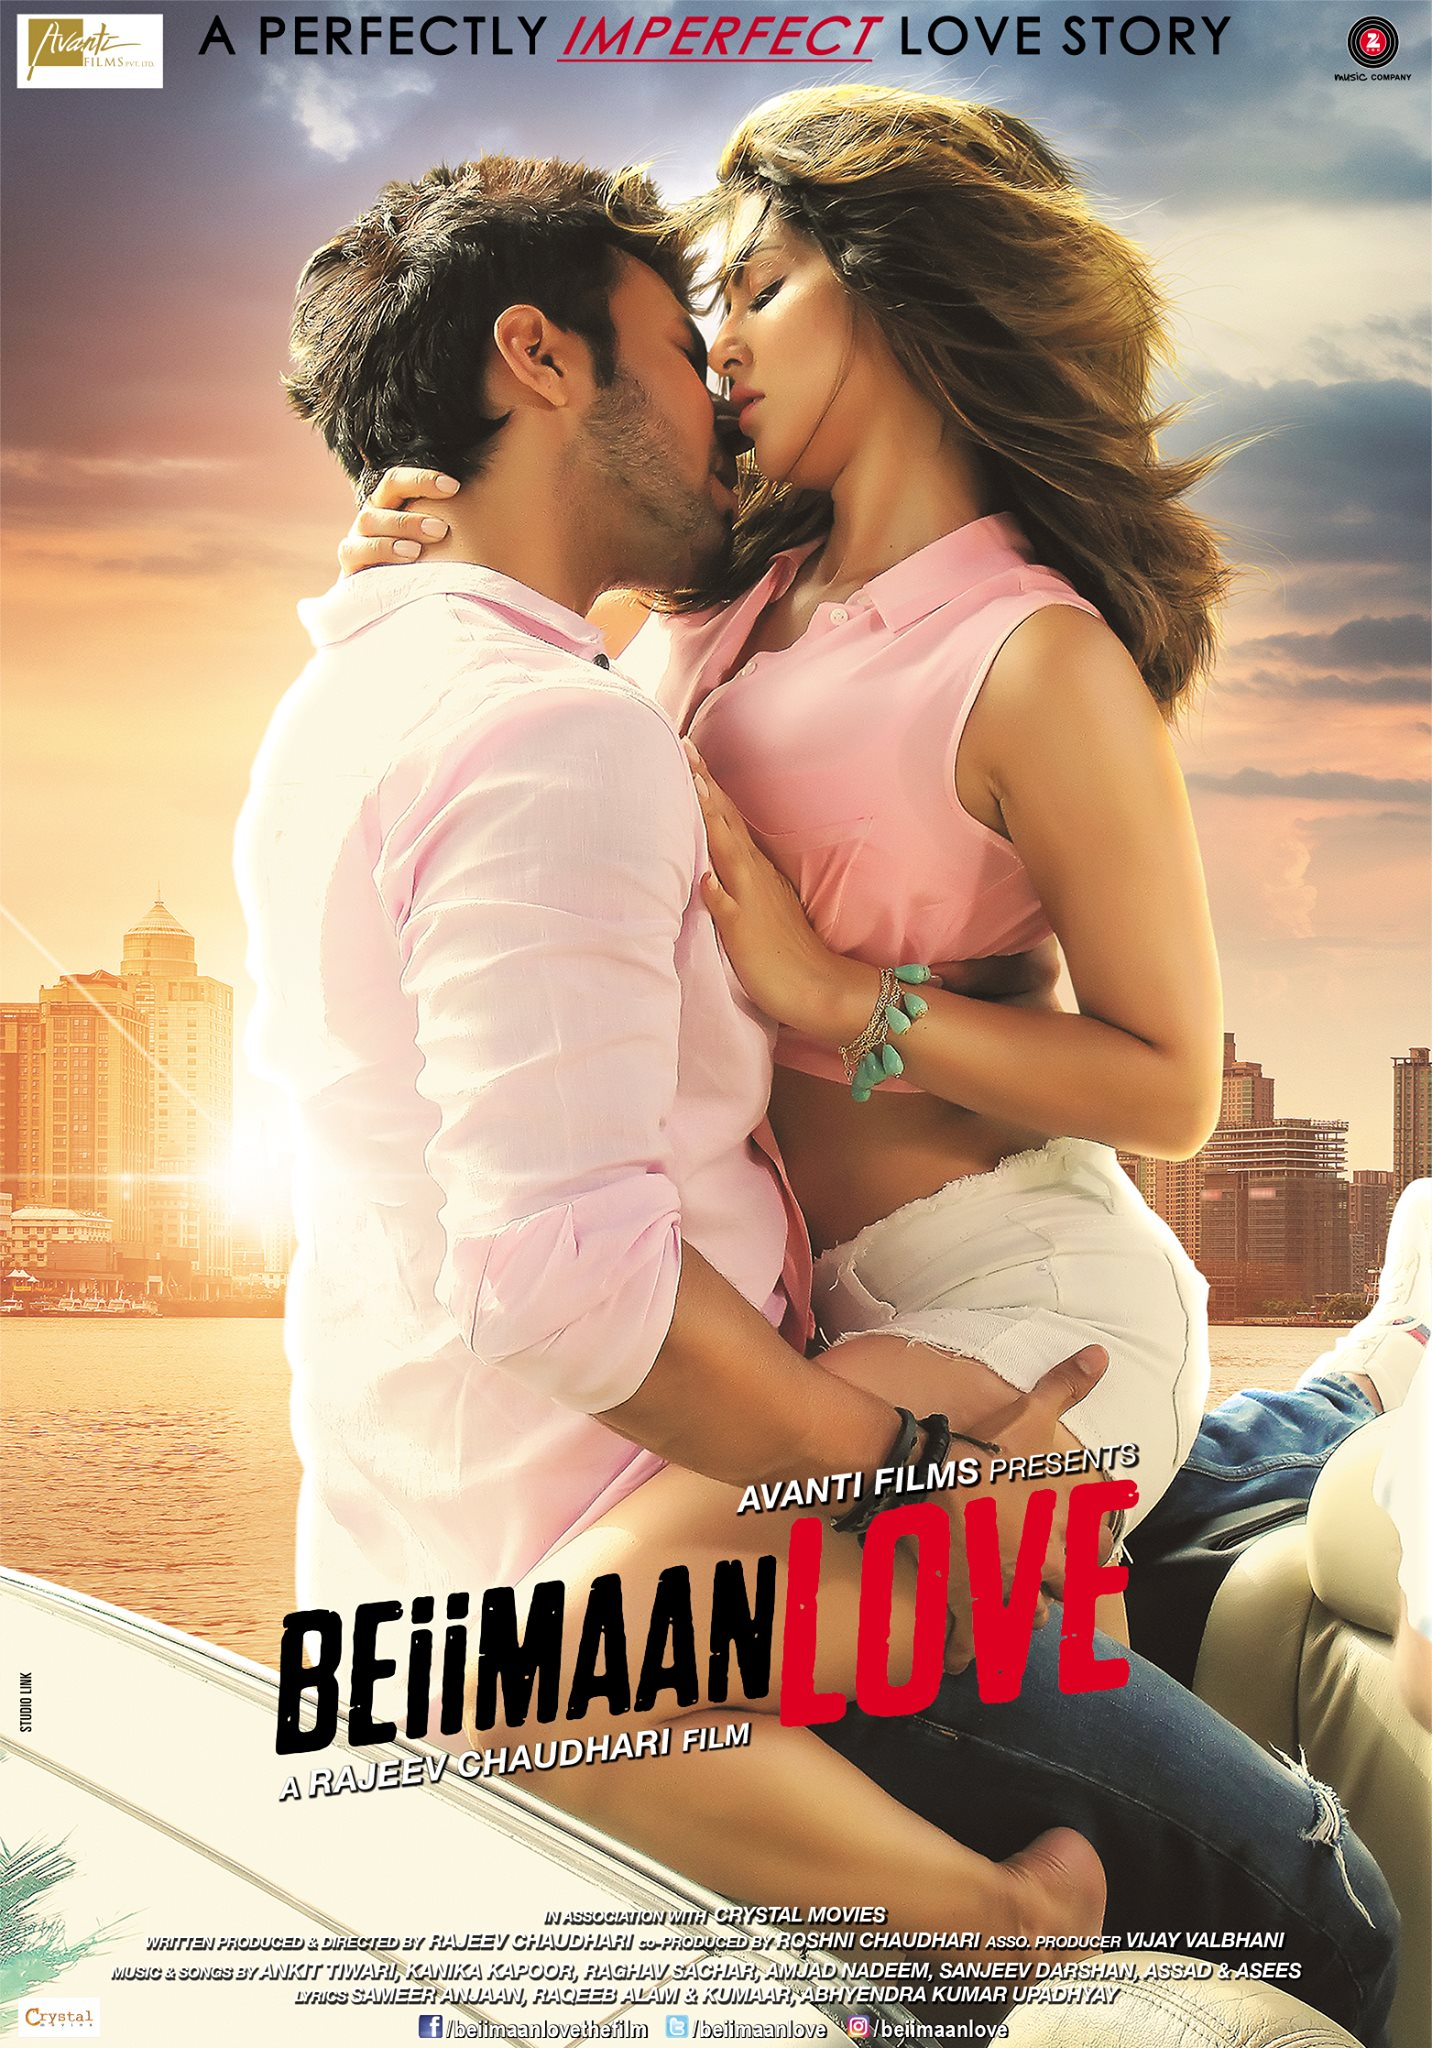 Beiimaan Love (2016) Hindi WEB-DL - 480P | 720P - x264 - 300MB | 1.2GB - Download & Watch Online  Movie Poster - mlsbd